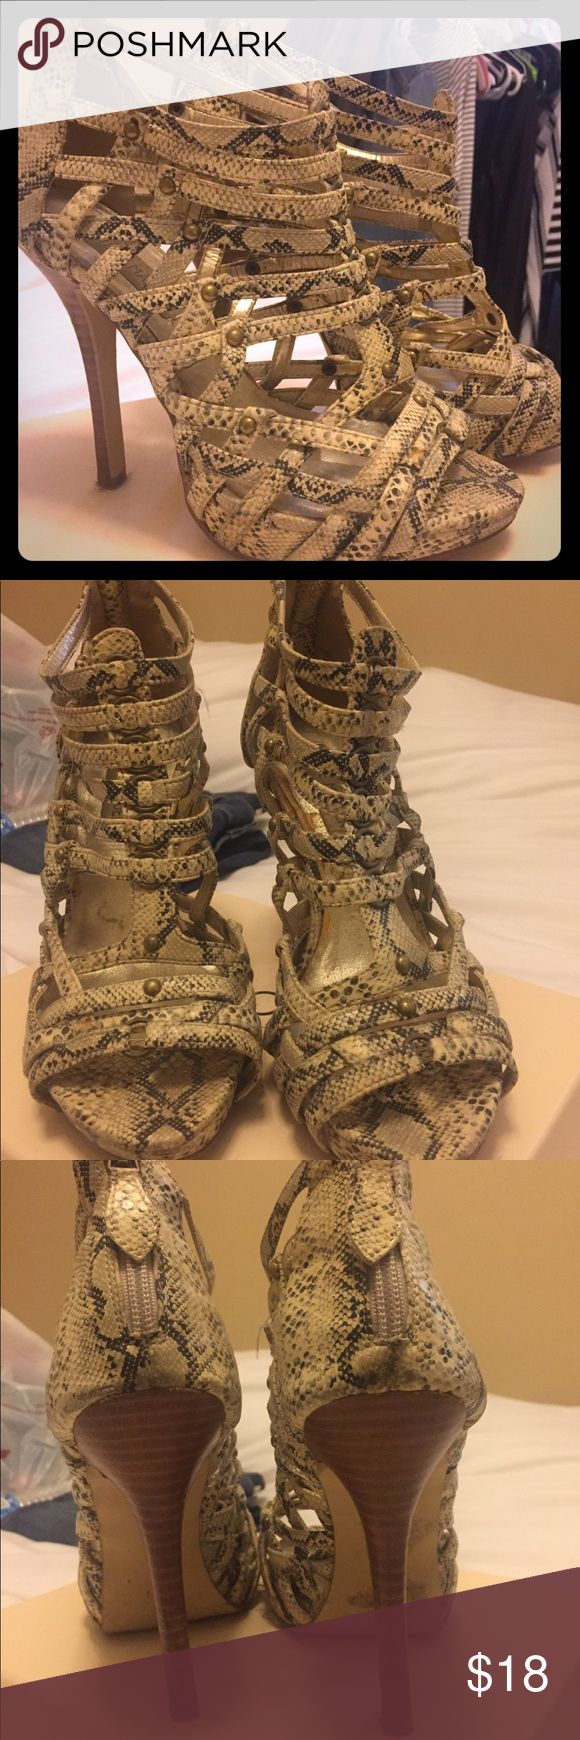 Jessica Simpson snakeskin caged heels Beautiful snake embossed leather caged heel with stacked wooden heels. Slight platform for comfort! Excellent used condition. Steve Madden Shoes Heels